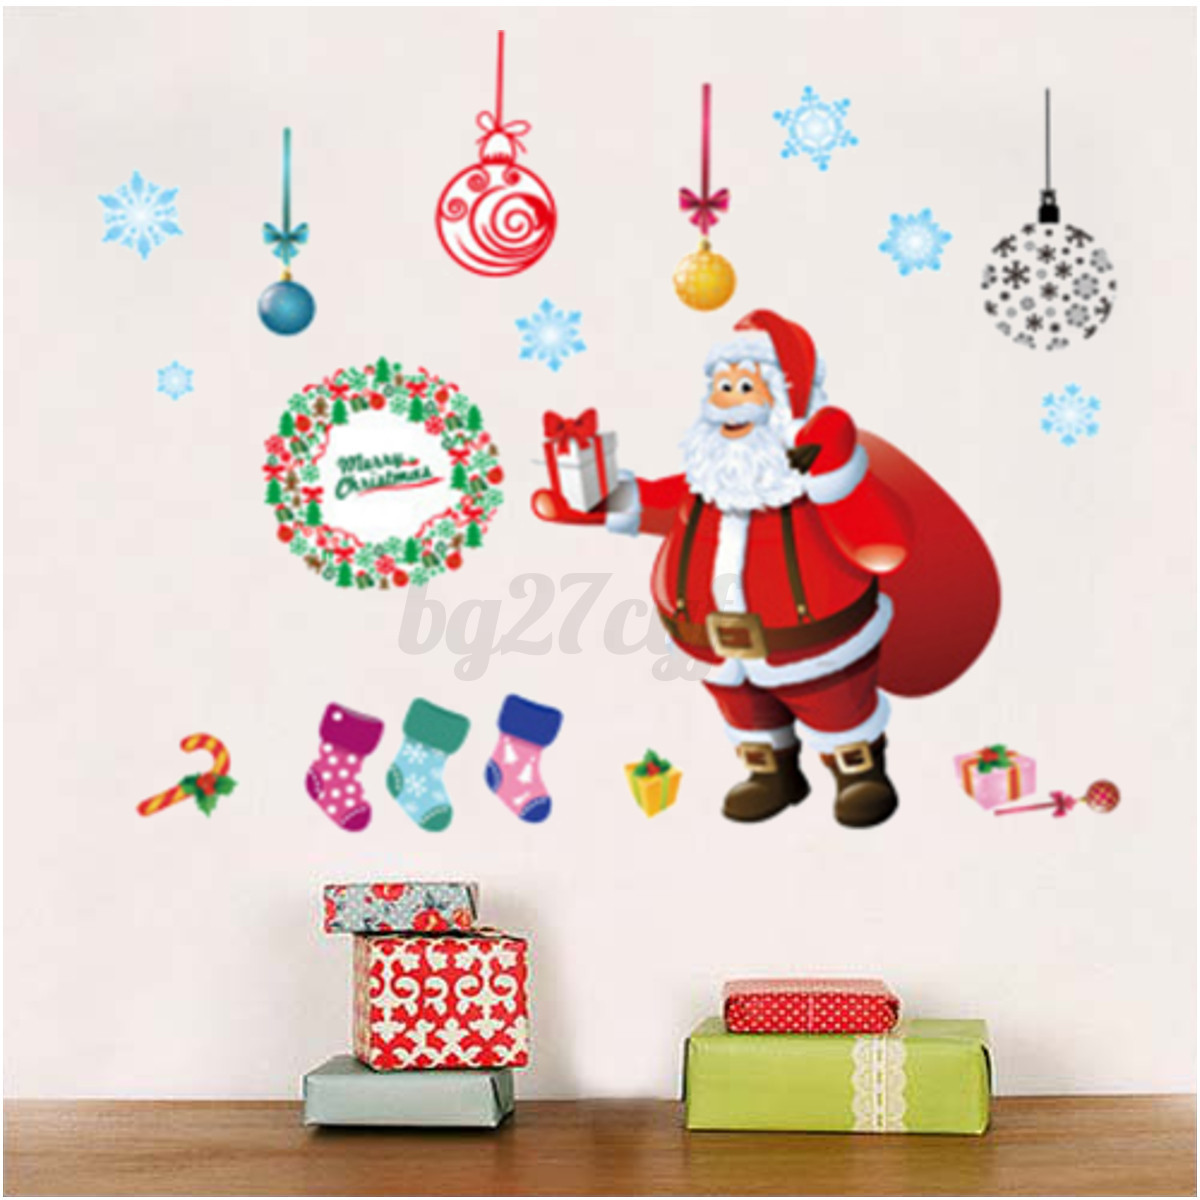 Large Christmas Tree Wall Stickers Window Decal Mural Home Decorators Catalog Best Ideas of Home Decor and Design [homedecoratorscatalog.us]